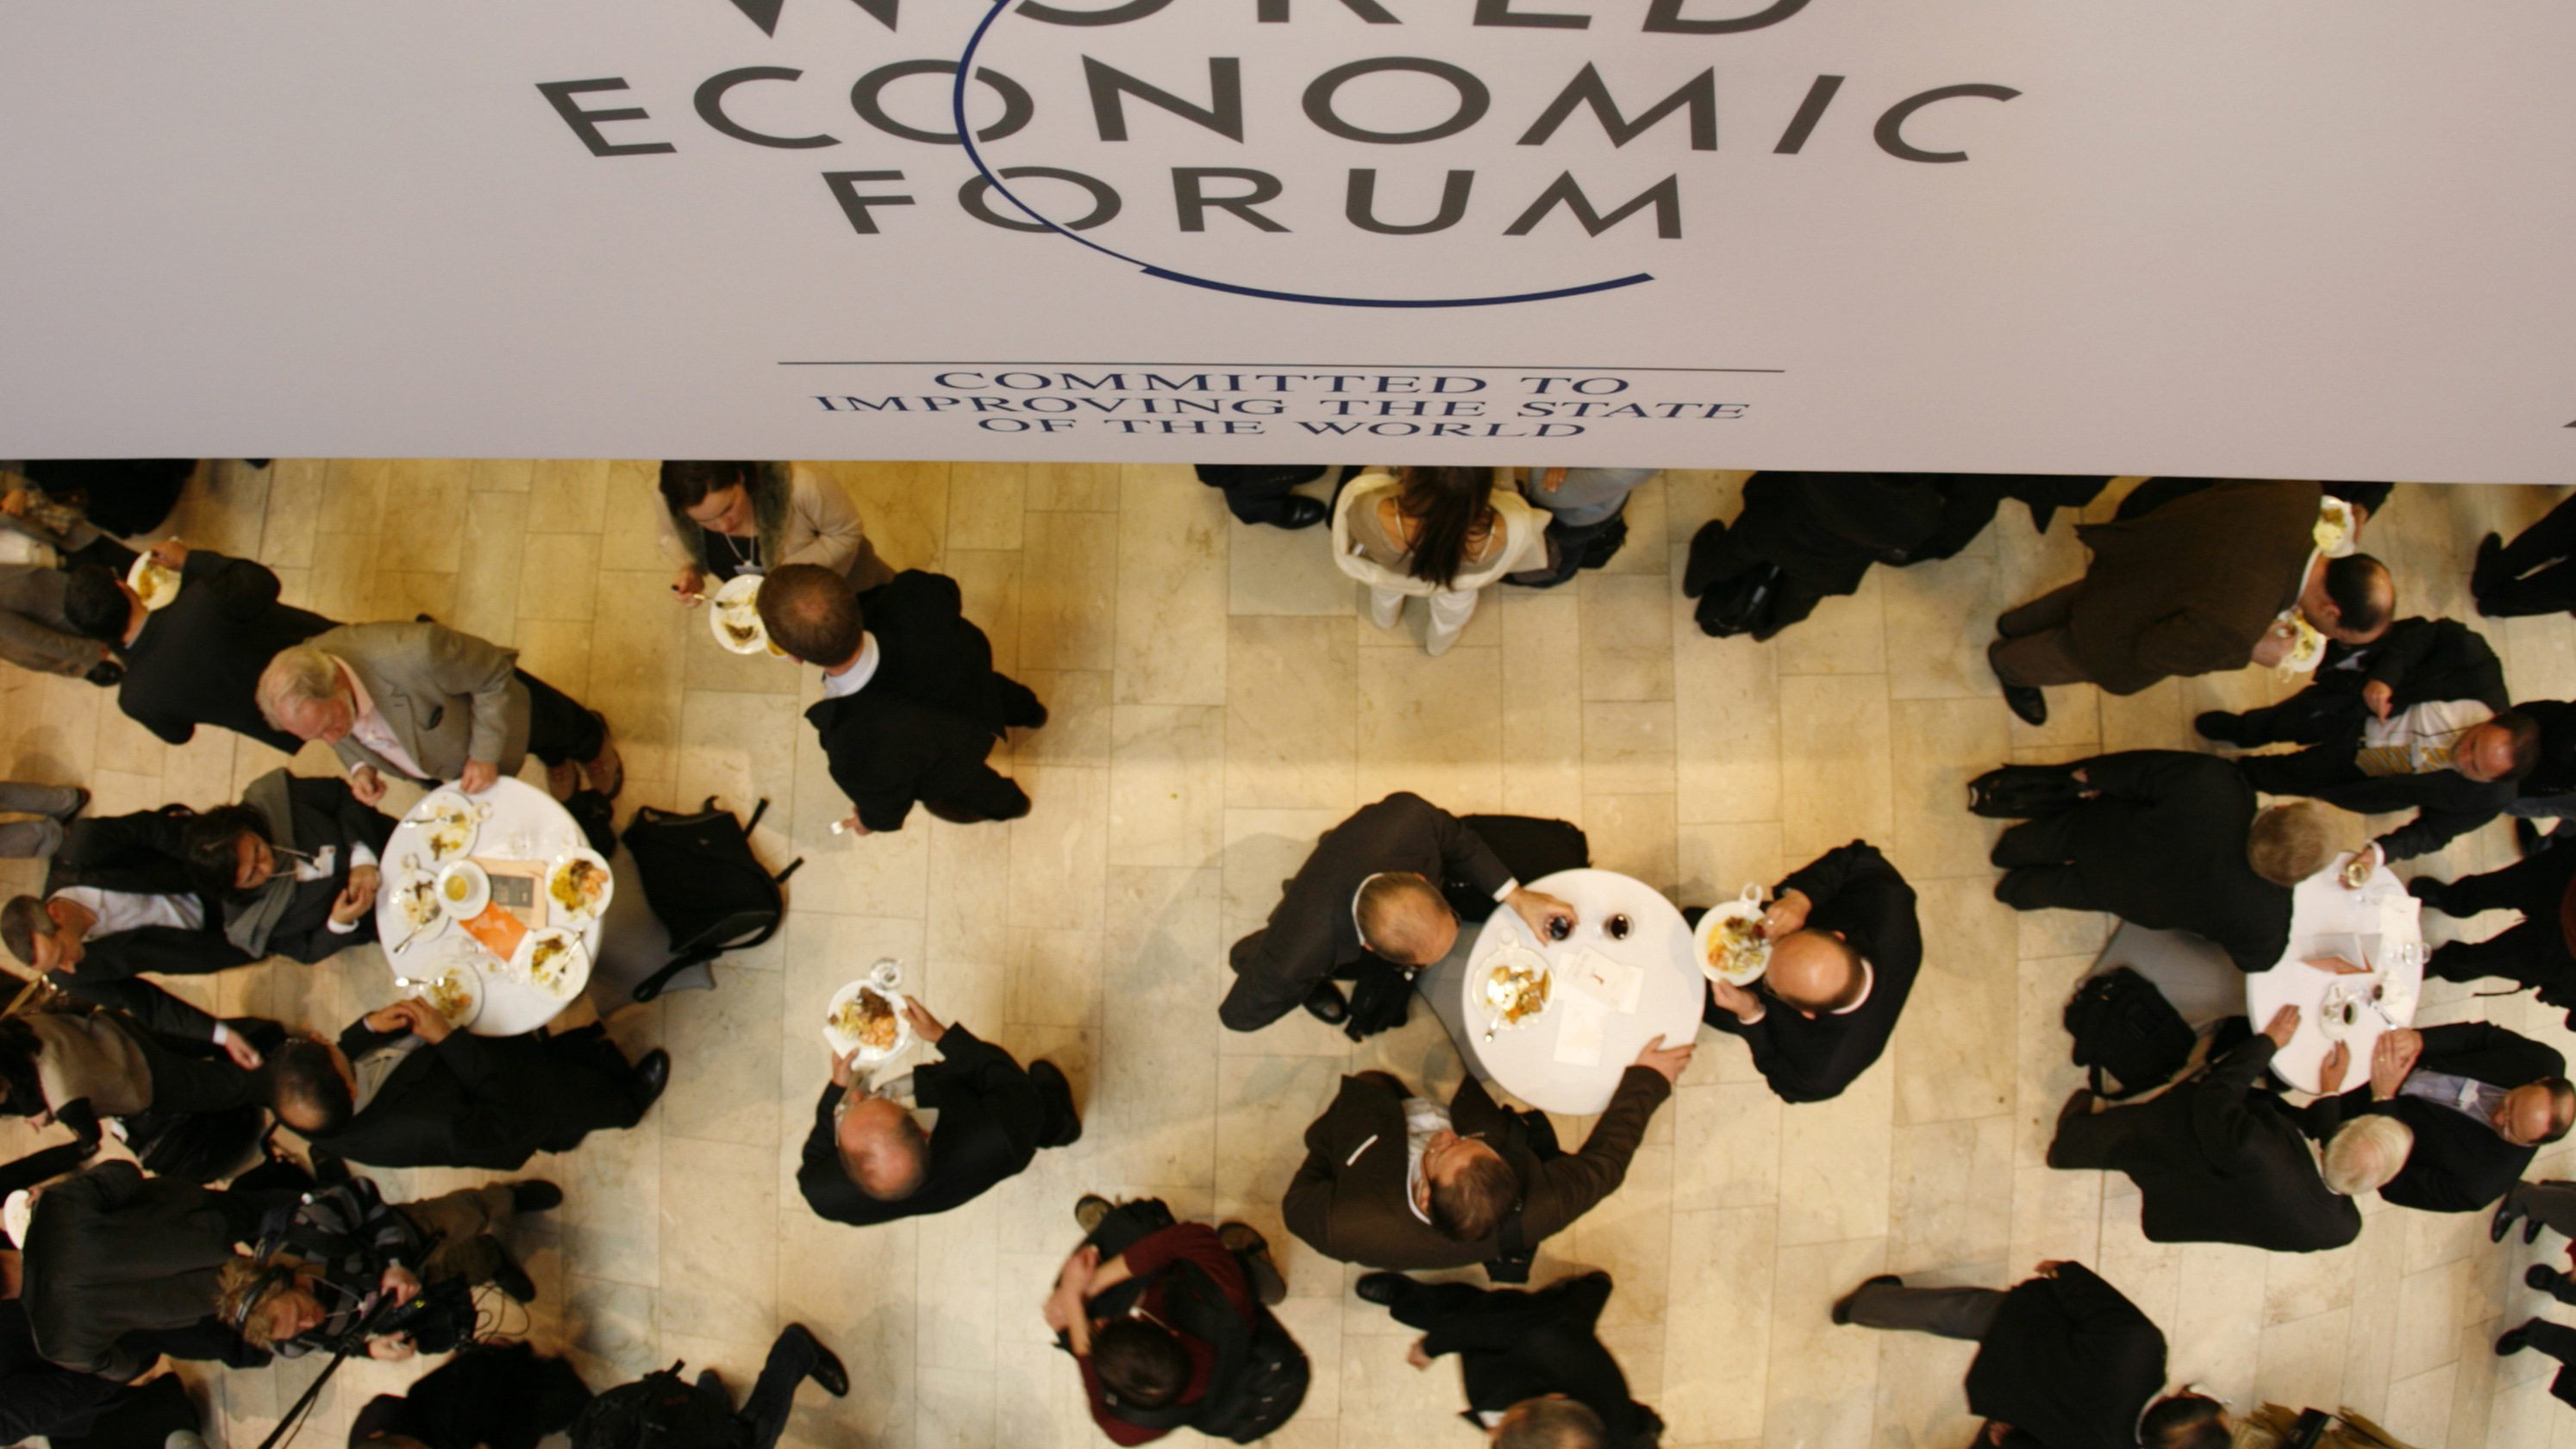 Attendees of the World Economic Forum (WEF) are seen from above in the main hall of the congress centre in the Swiss Alpine resort town of Davos January 23, 2008. This year's annual meeting of some 2,500 political, business and cultural leaders will address the forum's overall theme 'The Power of Collaborative Innovation'.        (SWITZERLAND) - GM1DXCIZBPAA